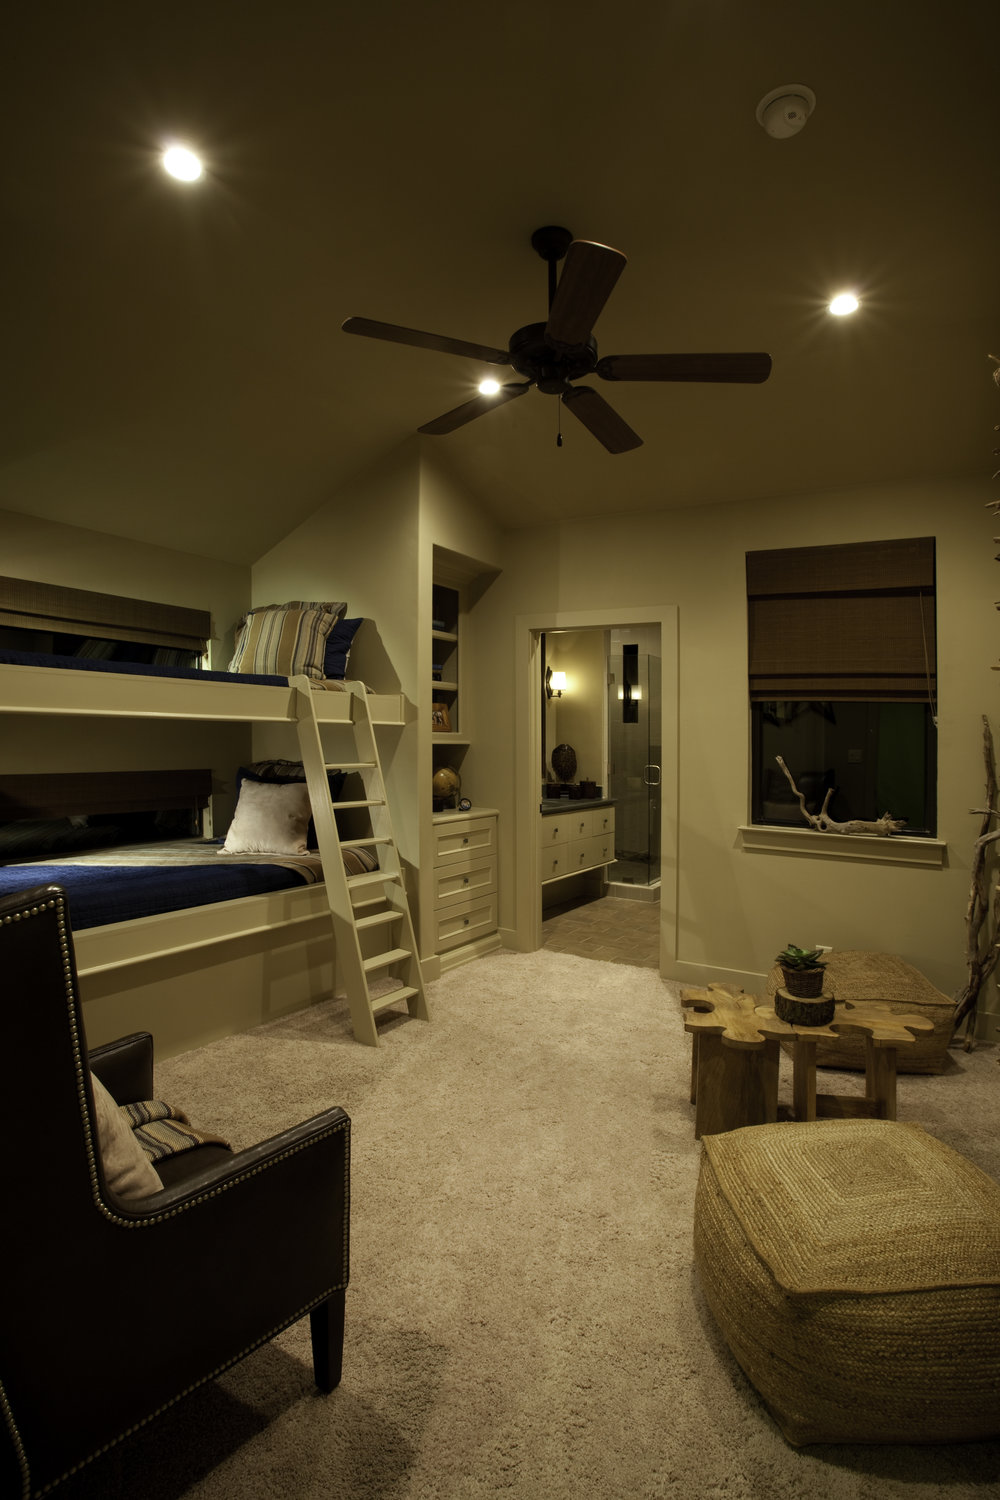 M & F Boys Bedroom.jpg